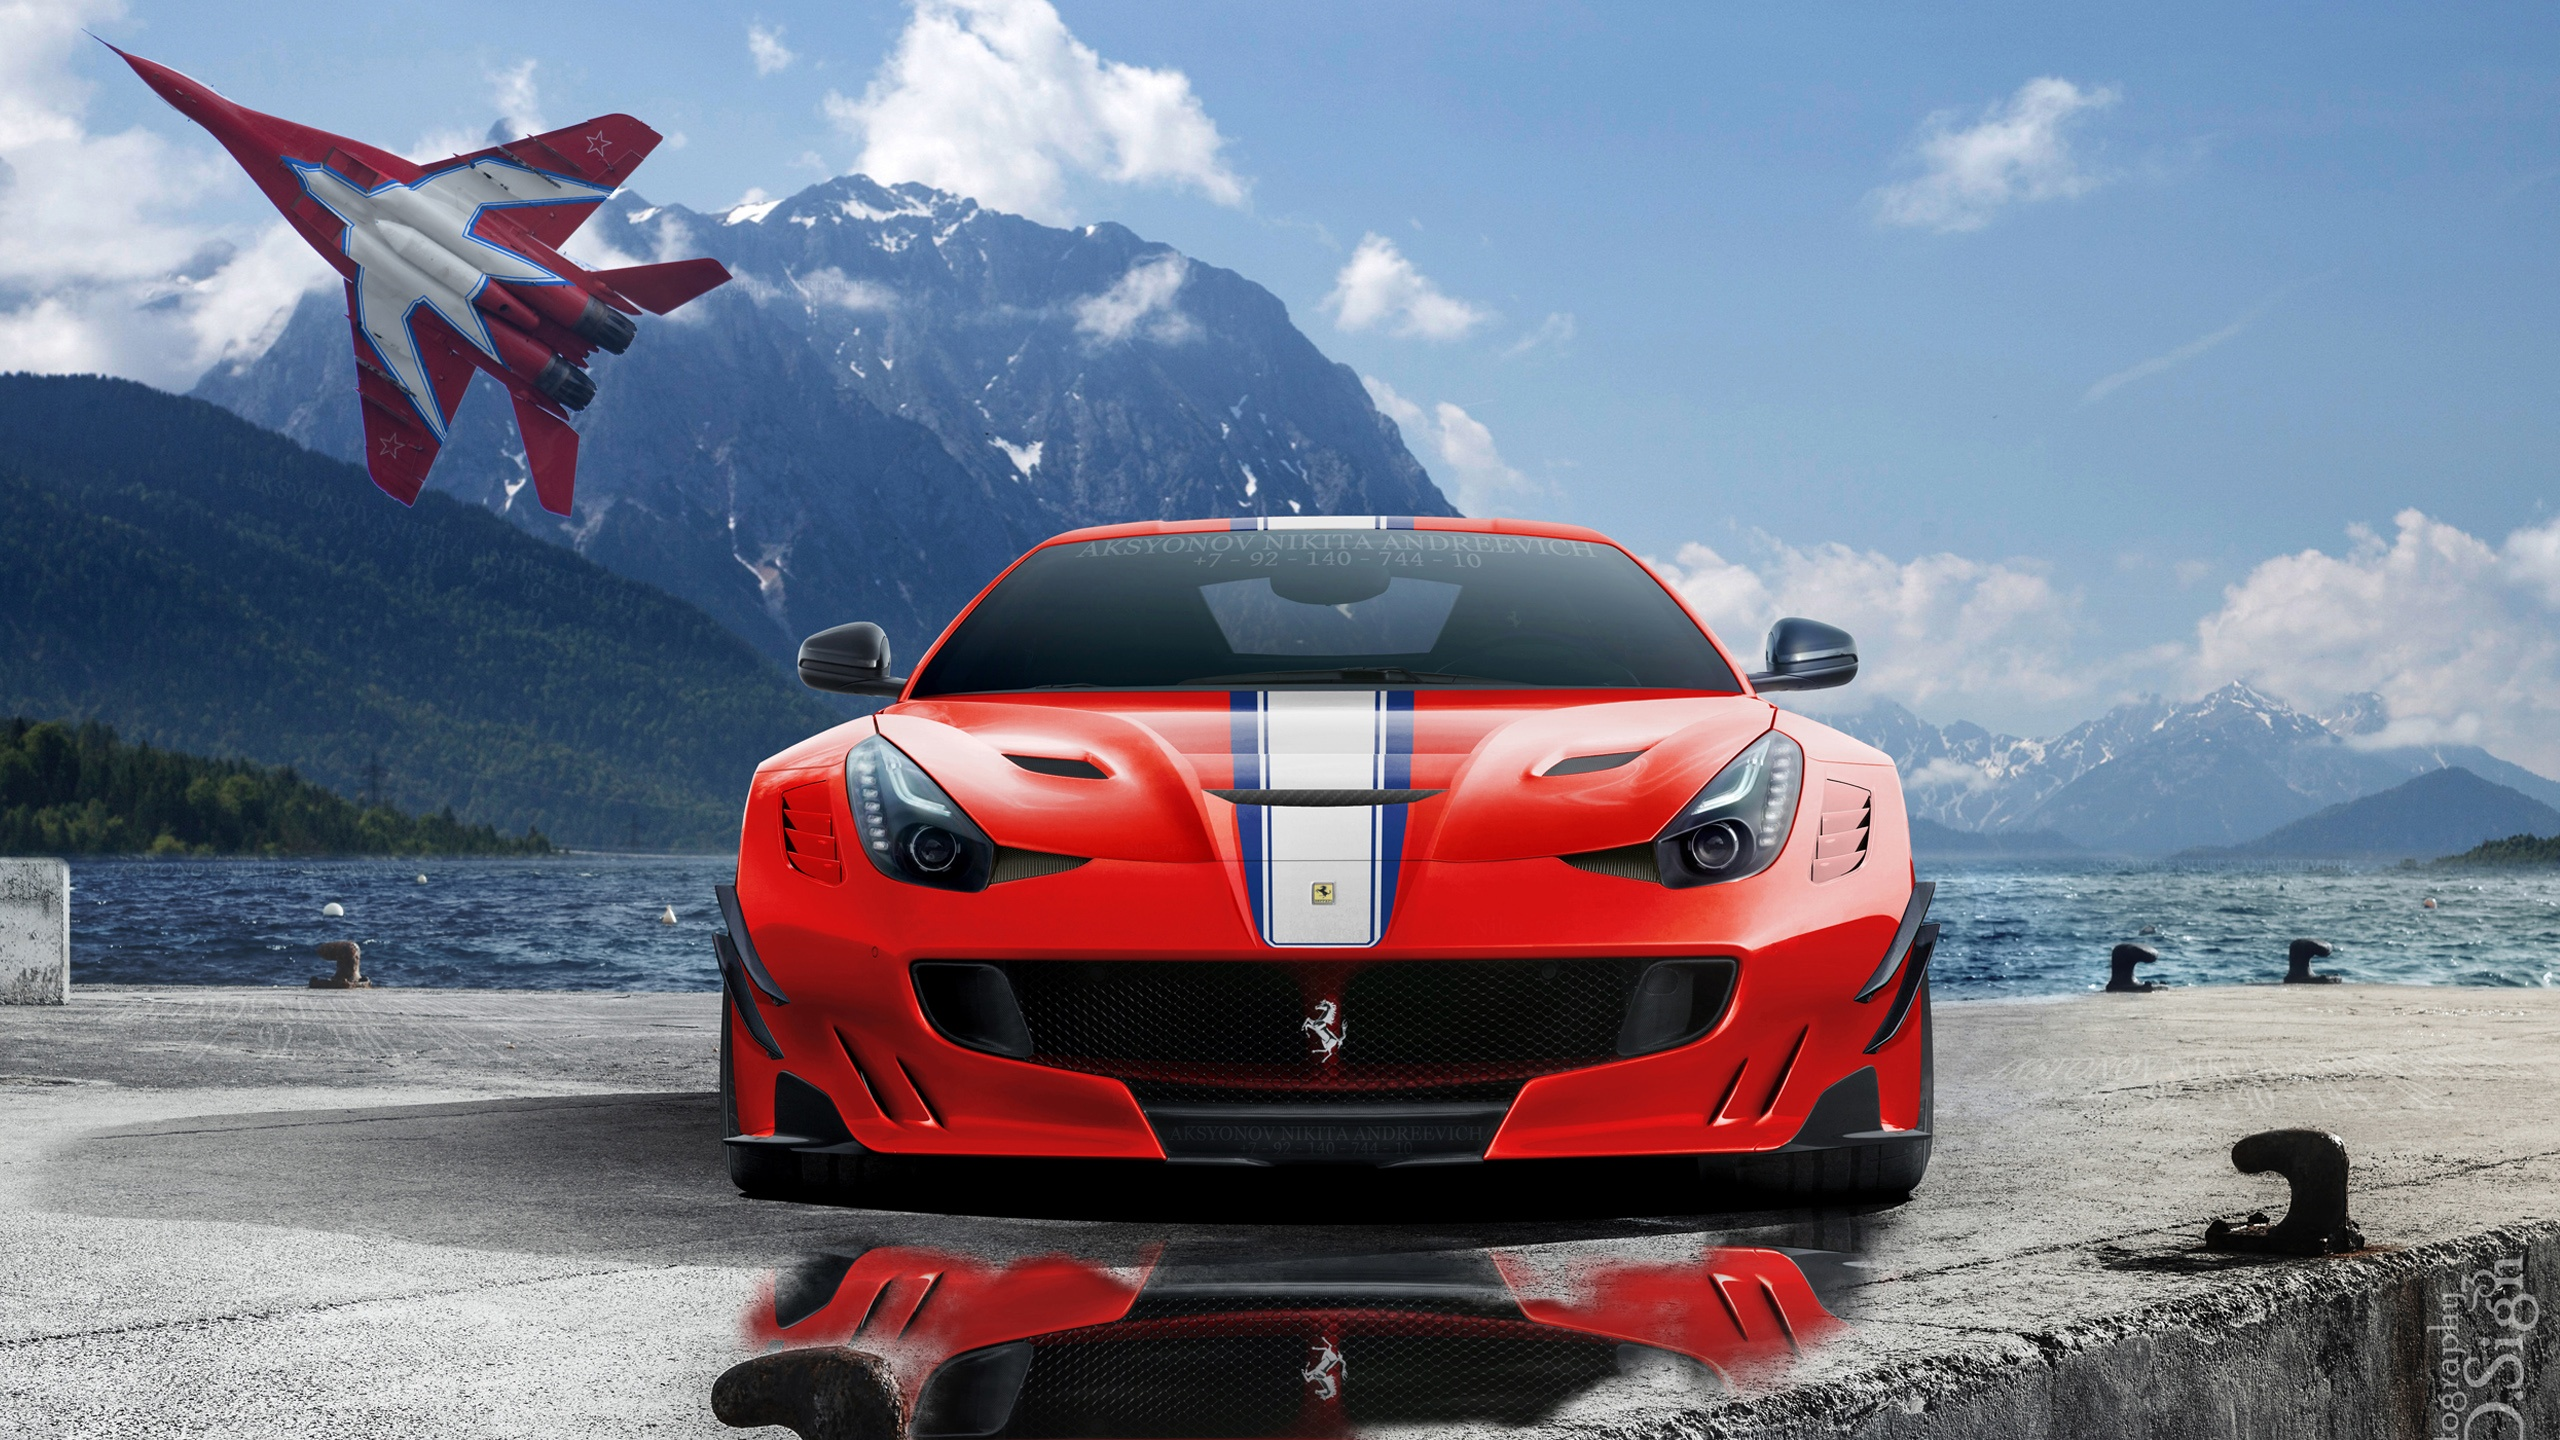 Ferrari Wallpapers Mobile Laferarri Ferrari F12 Tdf Speciale 2560x1440 Wallpaper Teahub Io